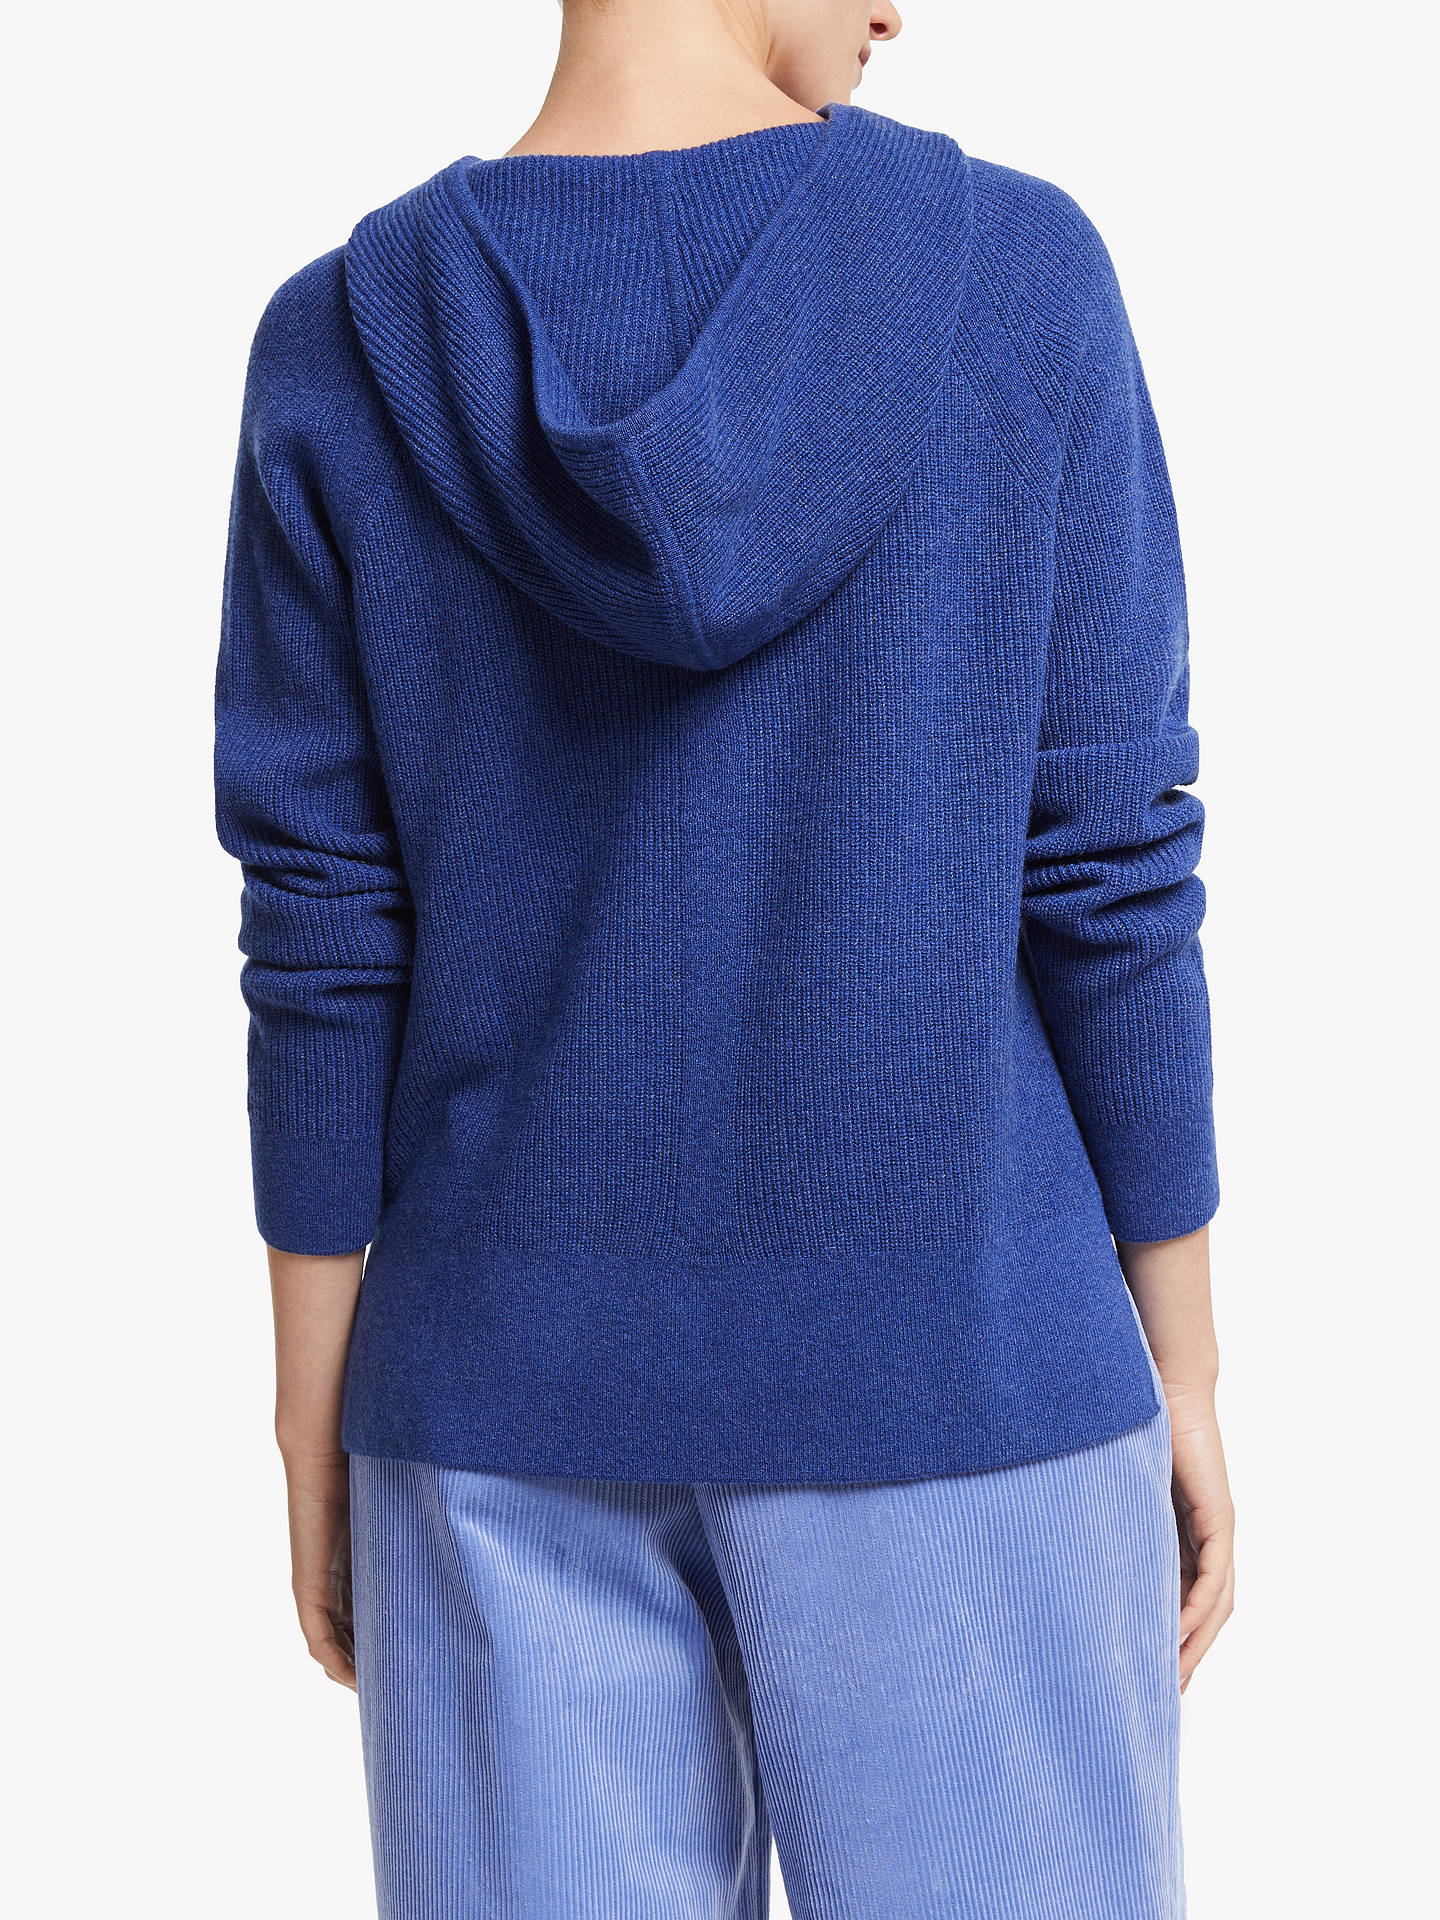 Buy John Lewis & Partners Cashmere Hooded Sweater, Twilight Blue, S Online at johnlewis.com